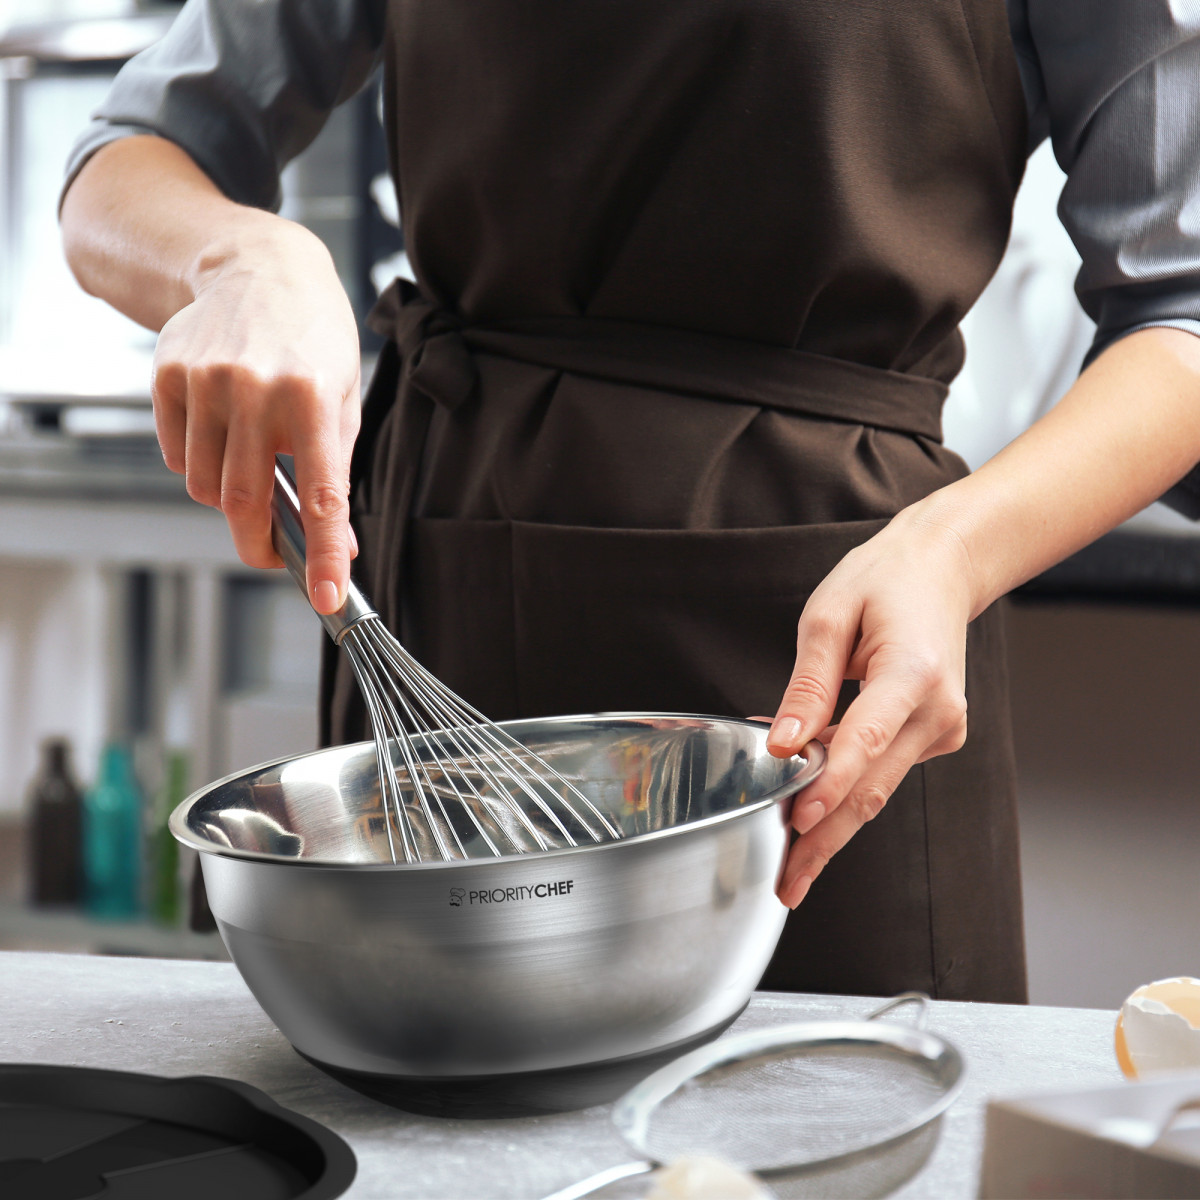 Stainless Steel Vs. Glass Mixing Bowls: The Pros & Cons